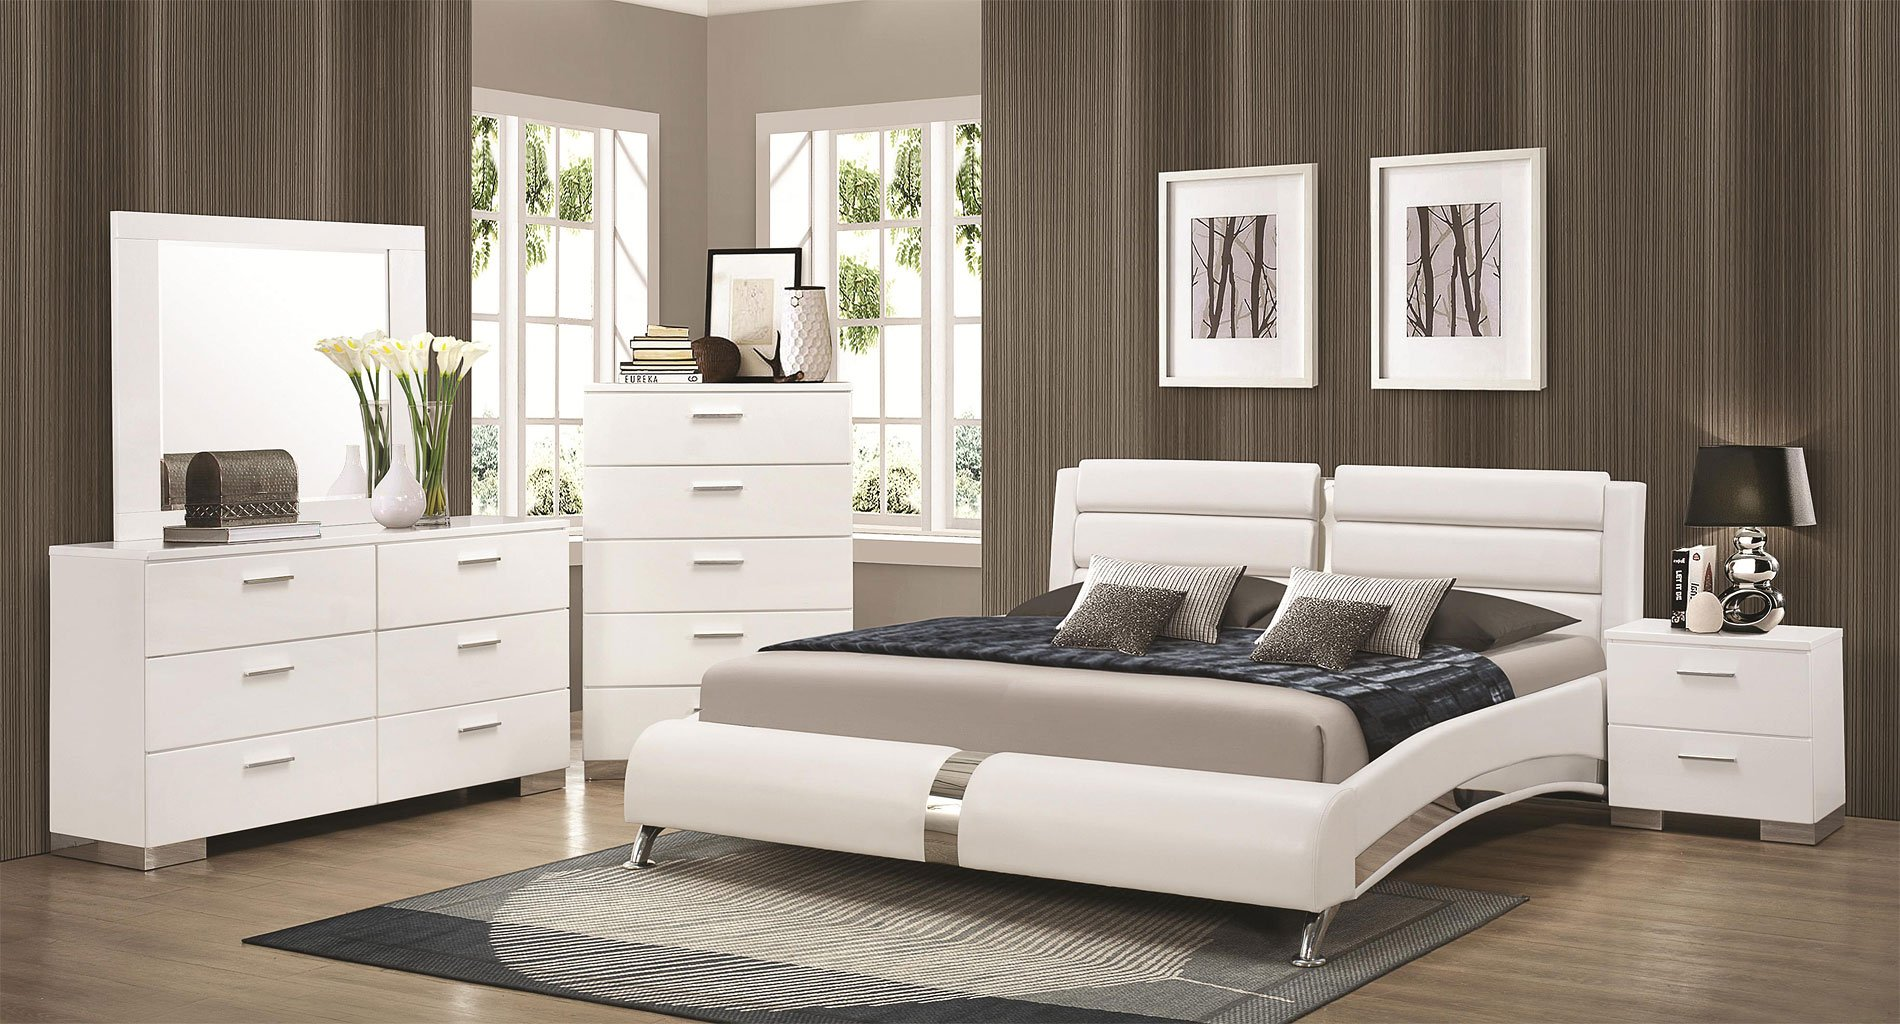 Felicity Bedroom Set w Jeremaine Bed White Bedroom  : 300345Q br set 1 from www.furniturepick.com size 1900 x 1024 jpeg 359kB